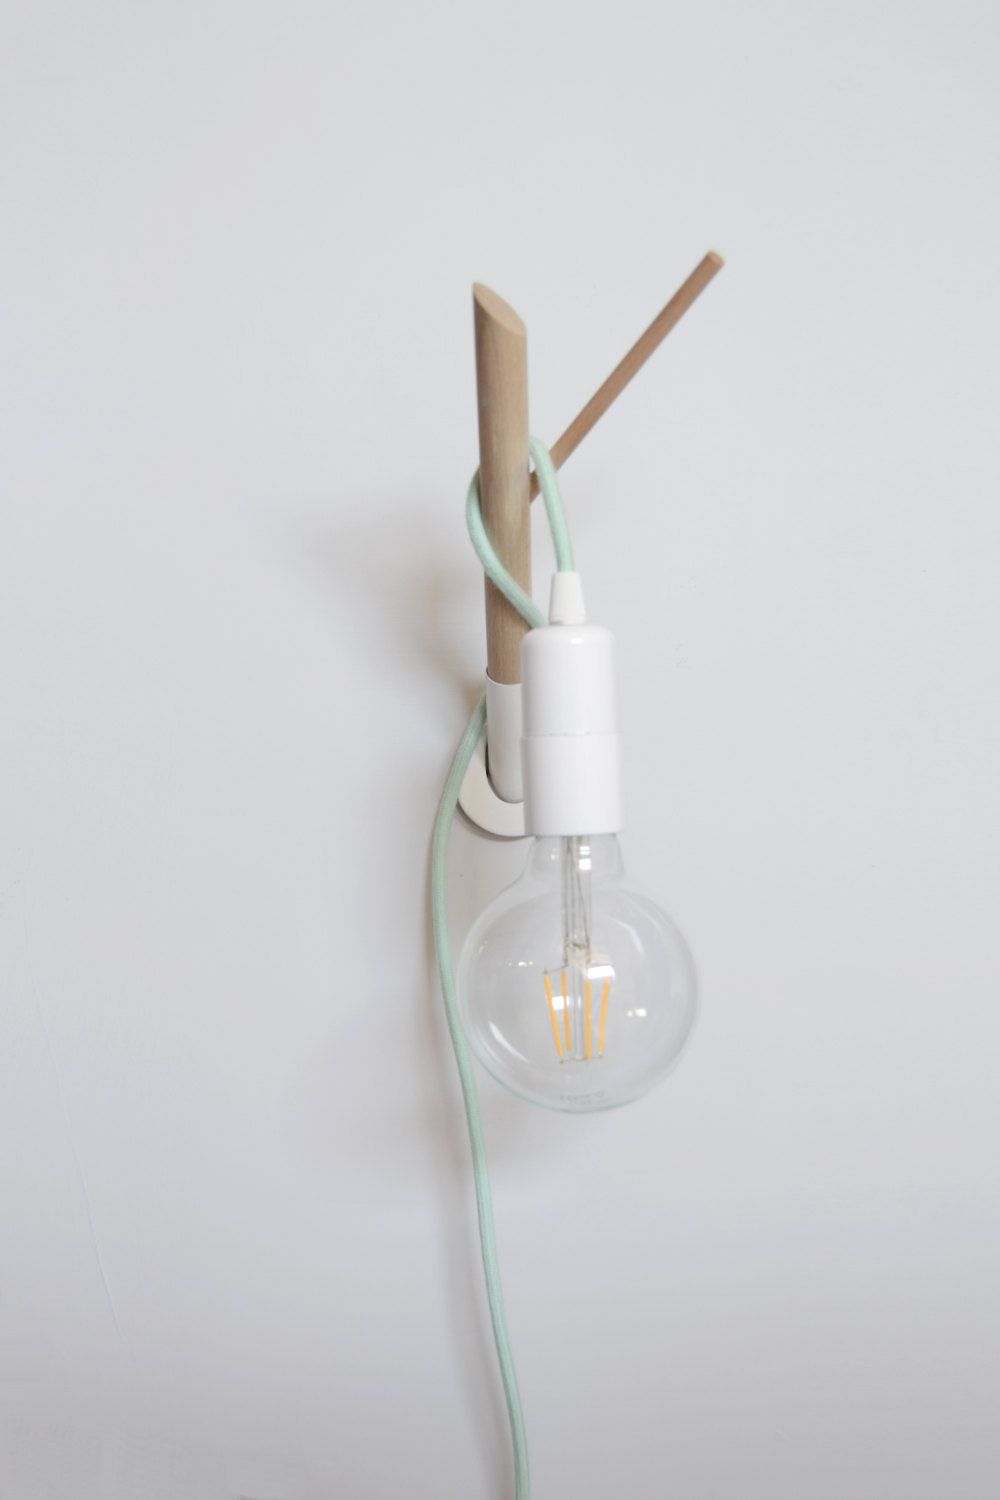 Handmade Wooden Lamp Hook with a Colored Fabric Cable, Wall Lamp ...